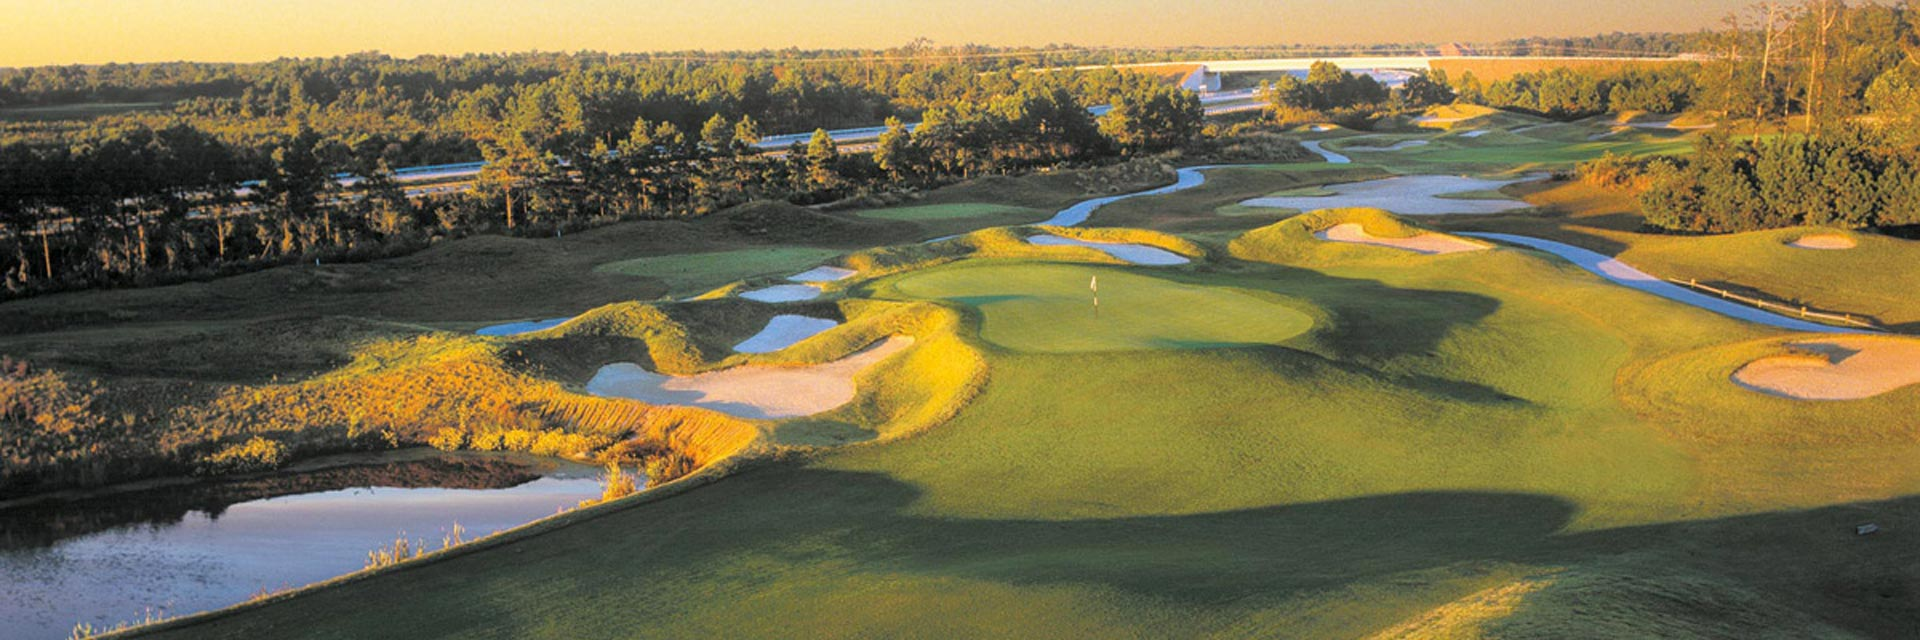 "Myrtle Beach Golf Package: Barefoot Resorts ""Big Break Package"" - 4 Nights / 4 Rounds starting at $125 per person, per day!"